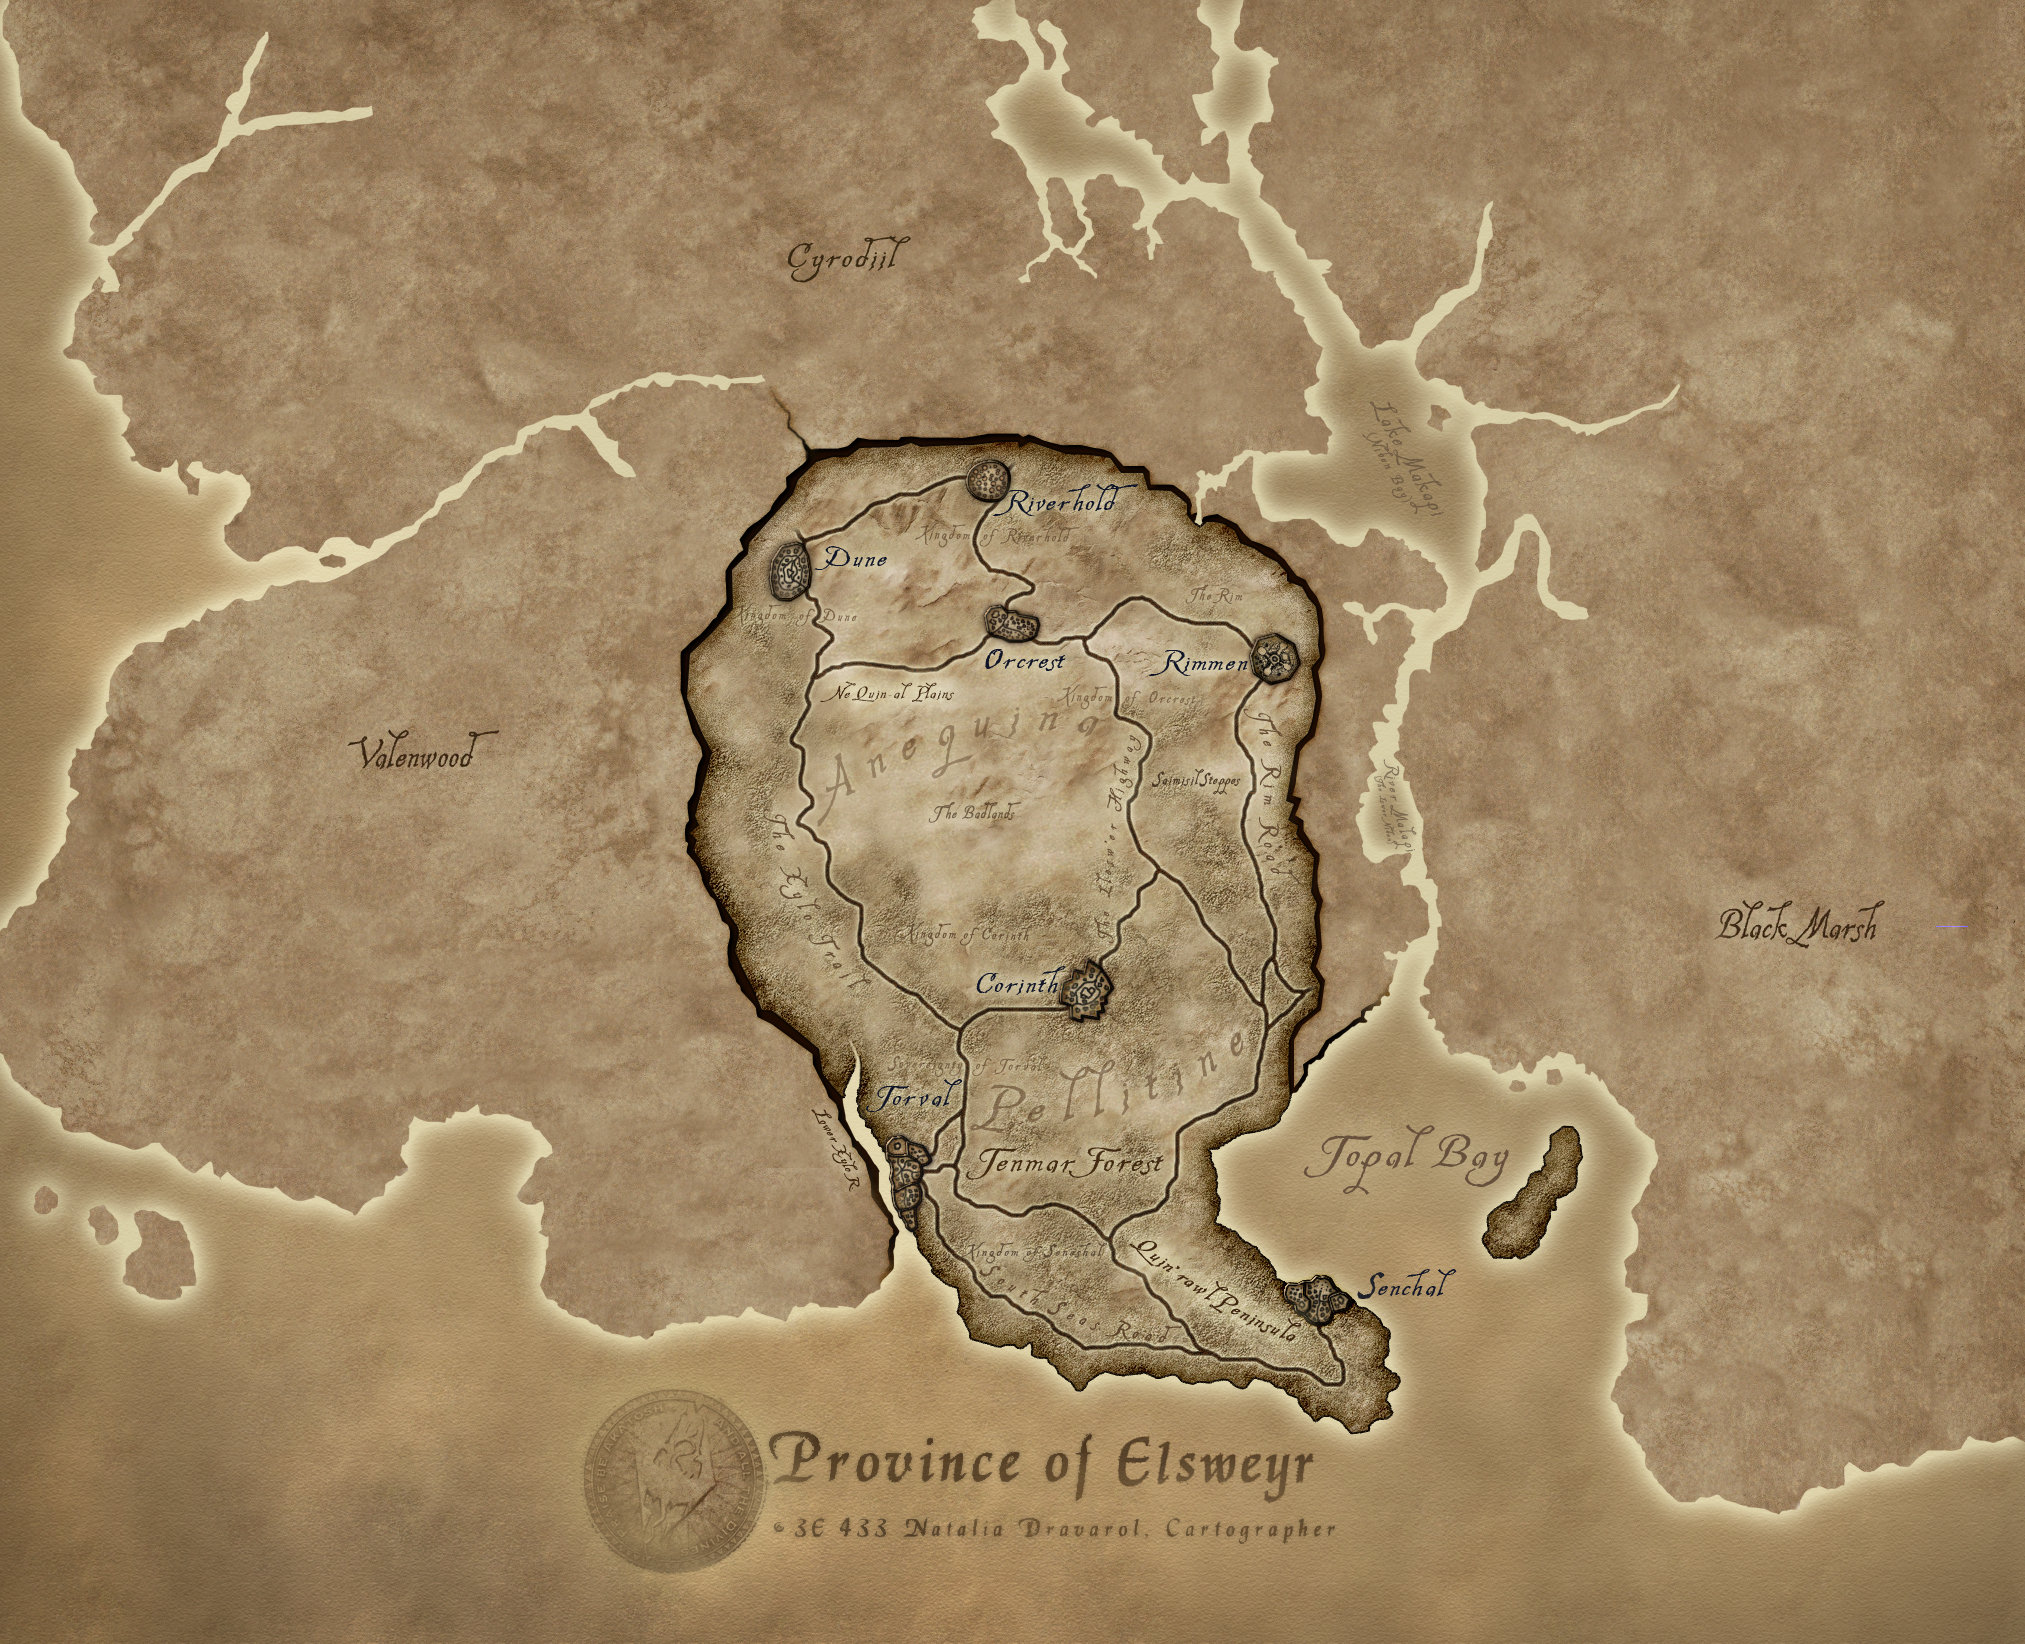 Will they add more maps elder scrolls online toybelsweyrg gumiabroncs Choice Image